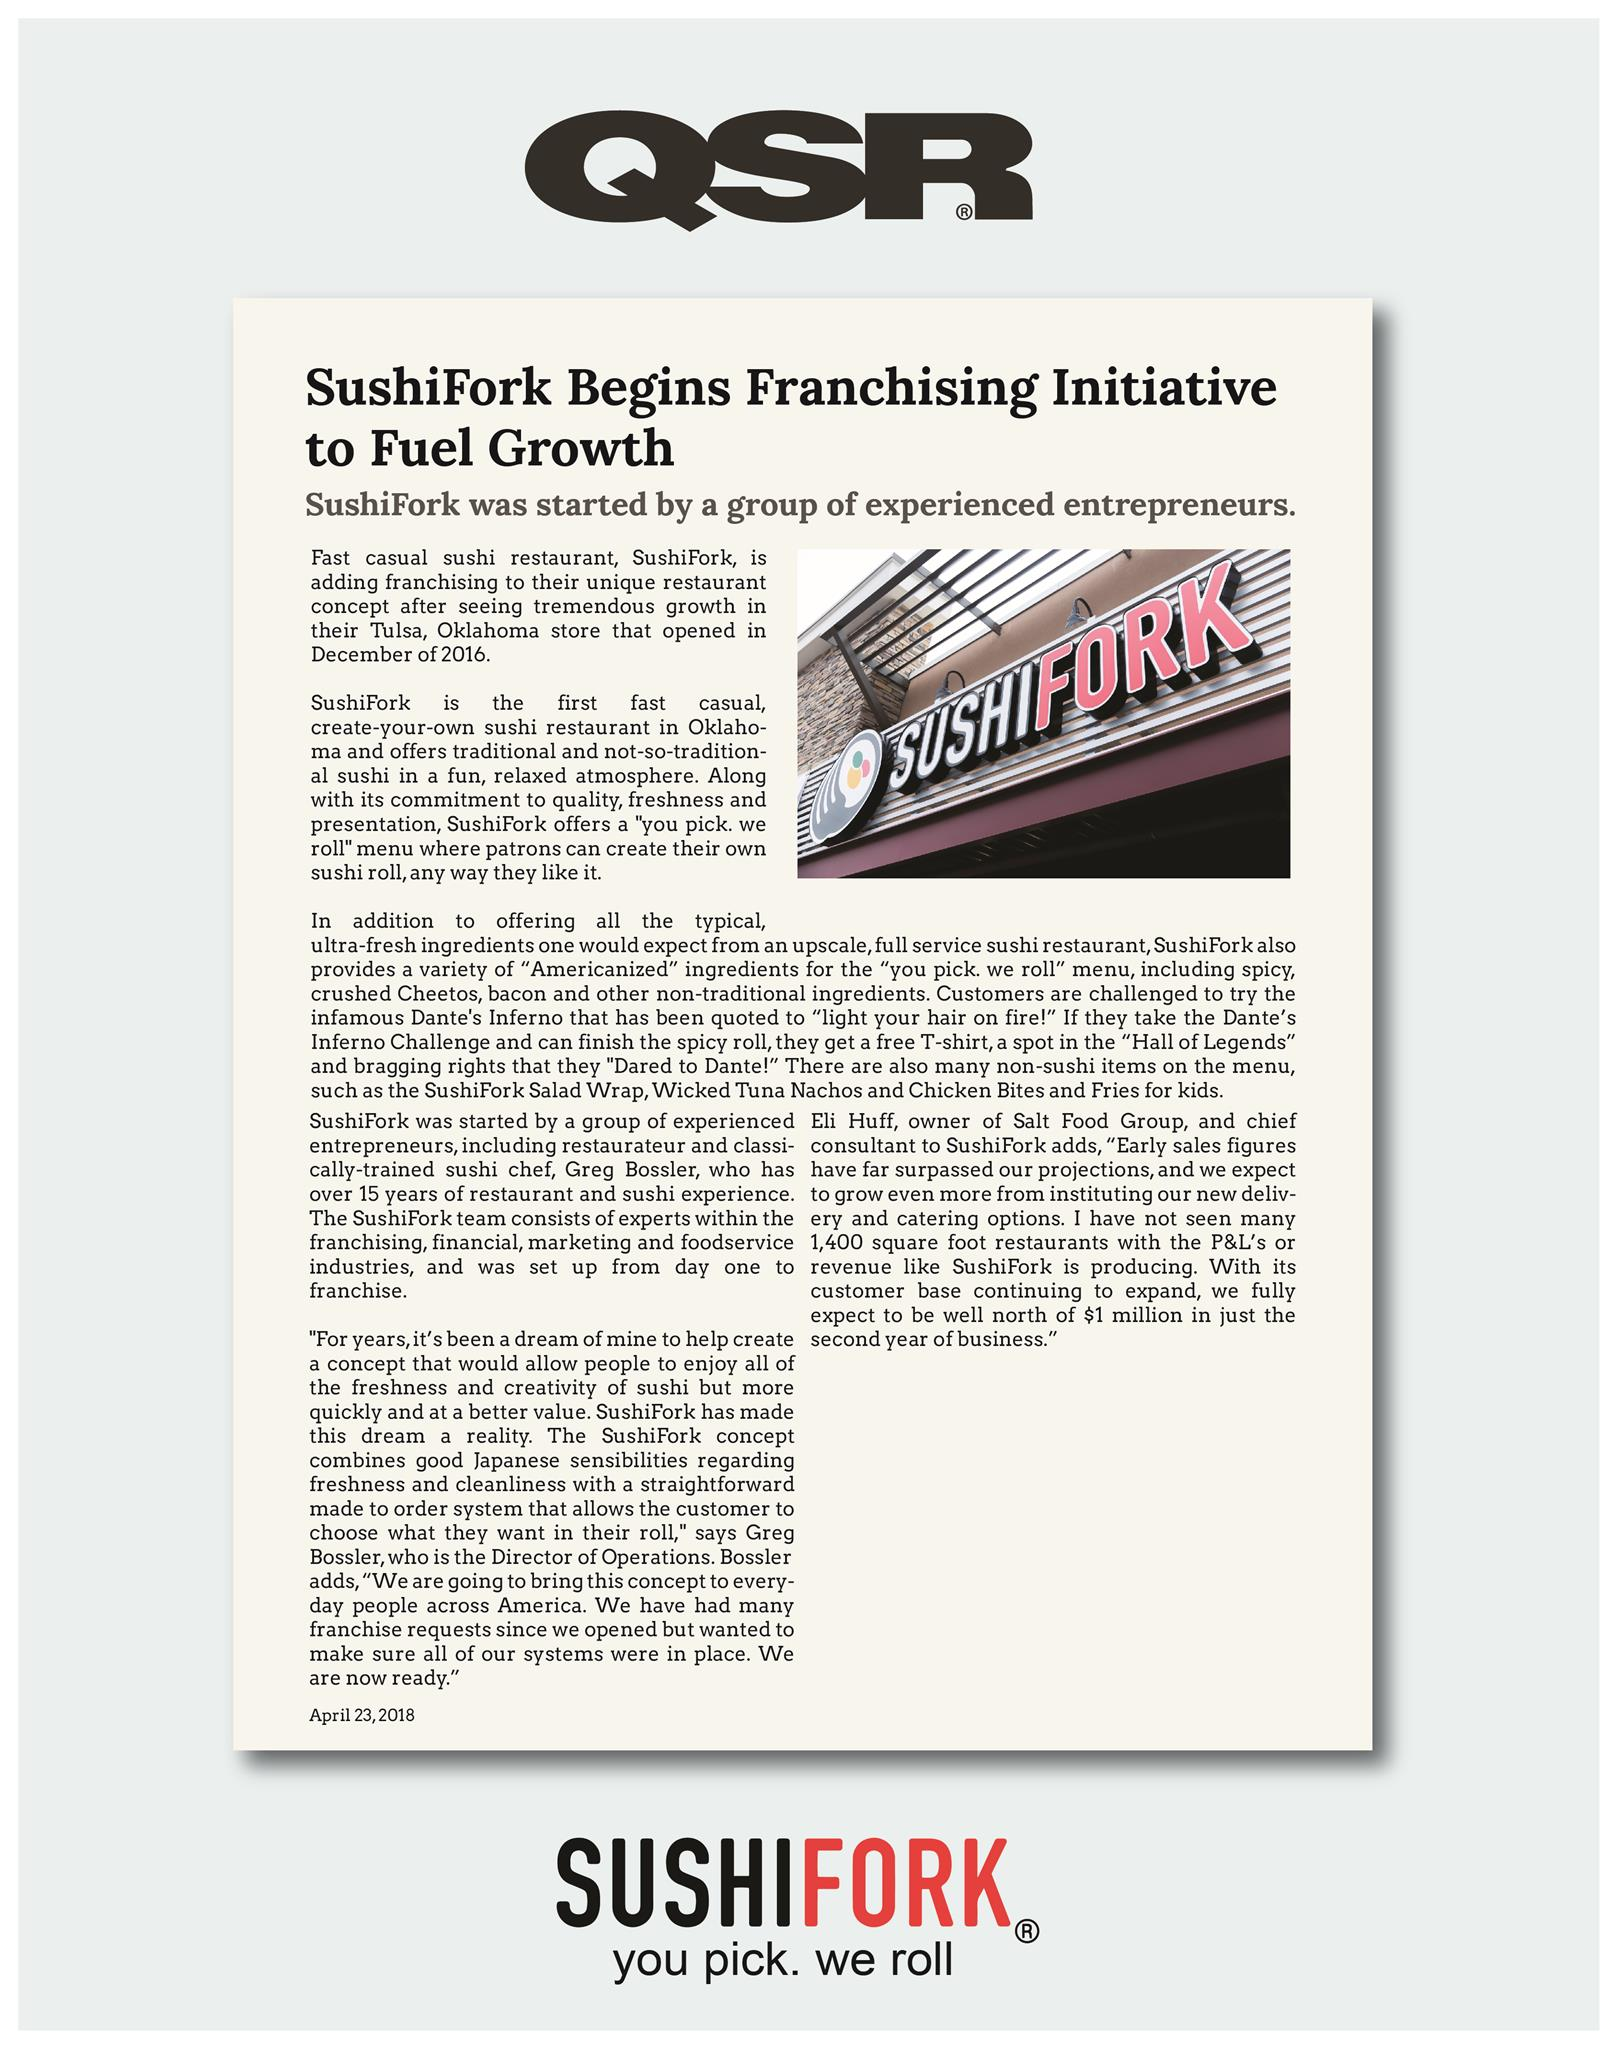 SushiFork Begins Franchising Initiative to Fuel Growth - QSR